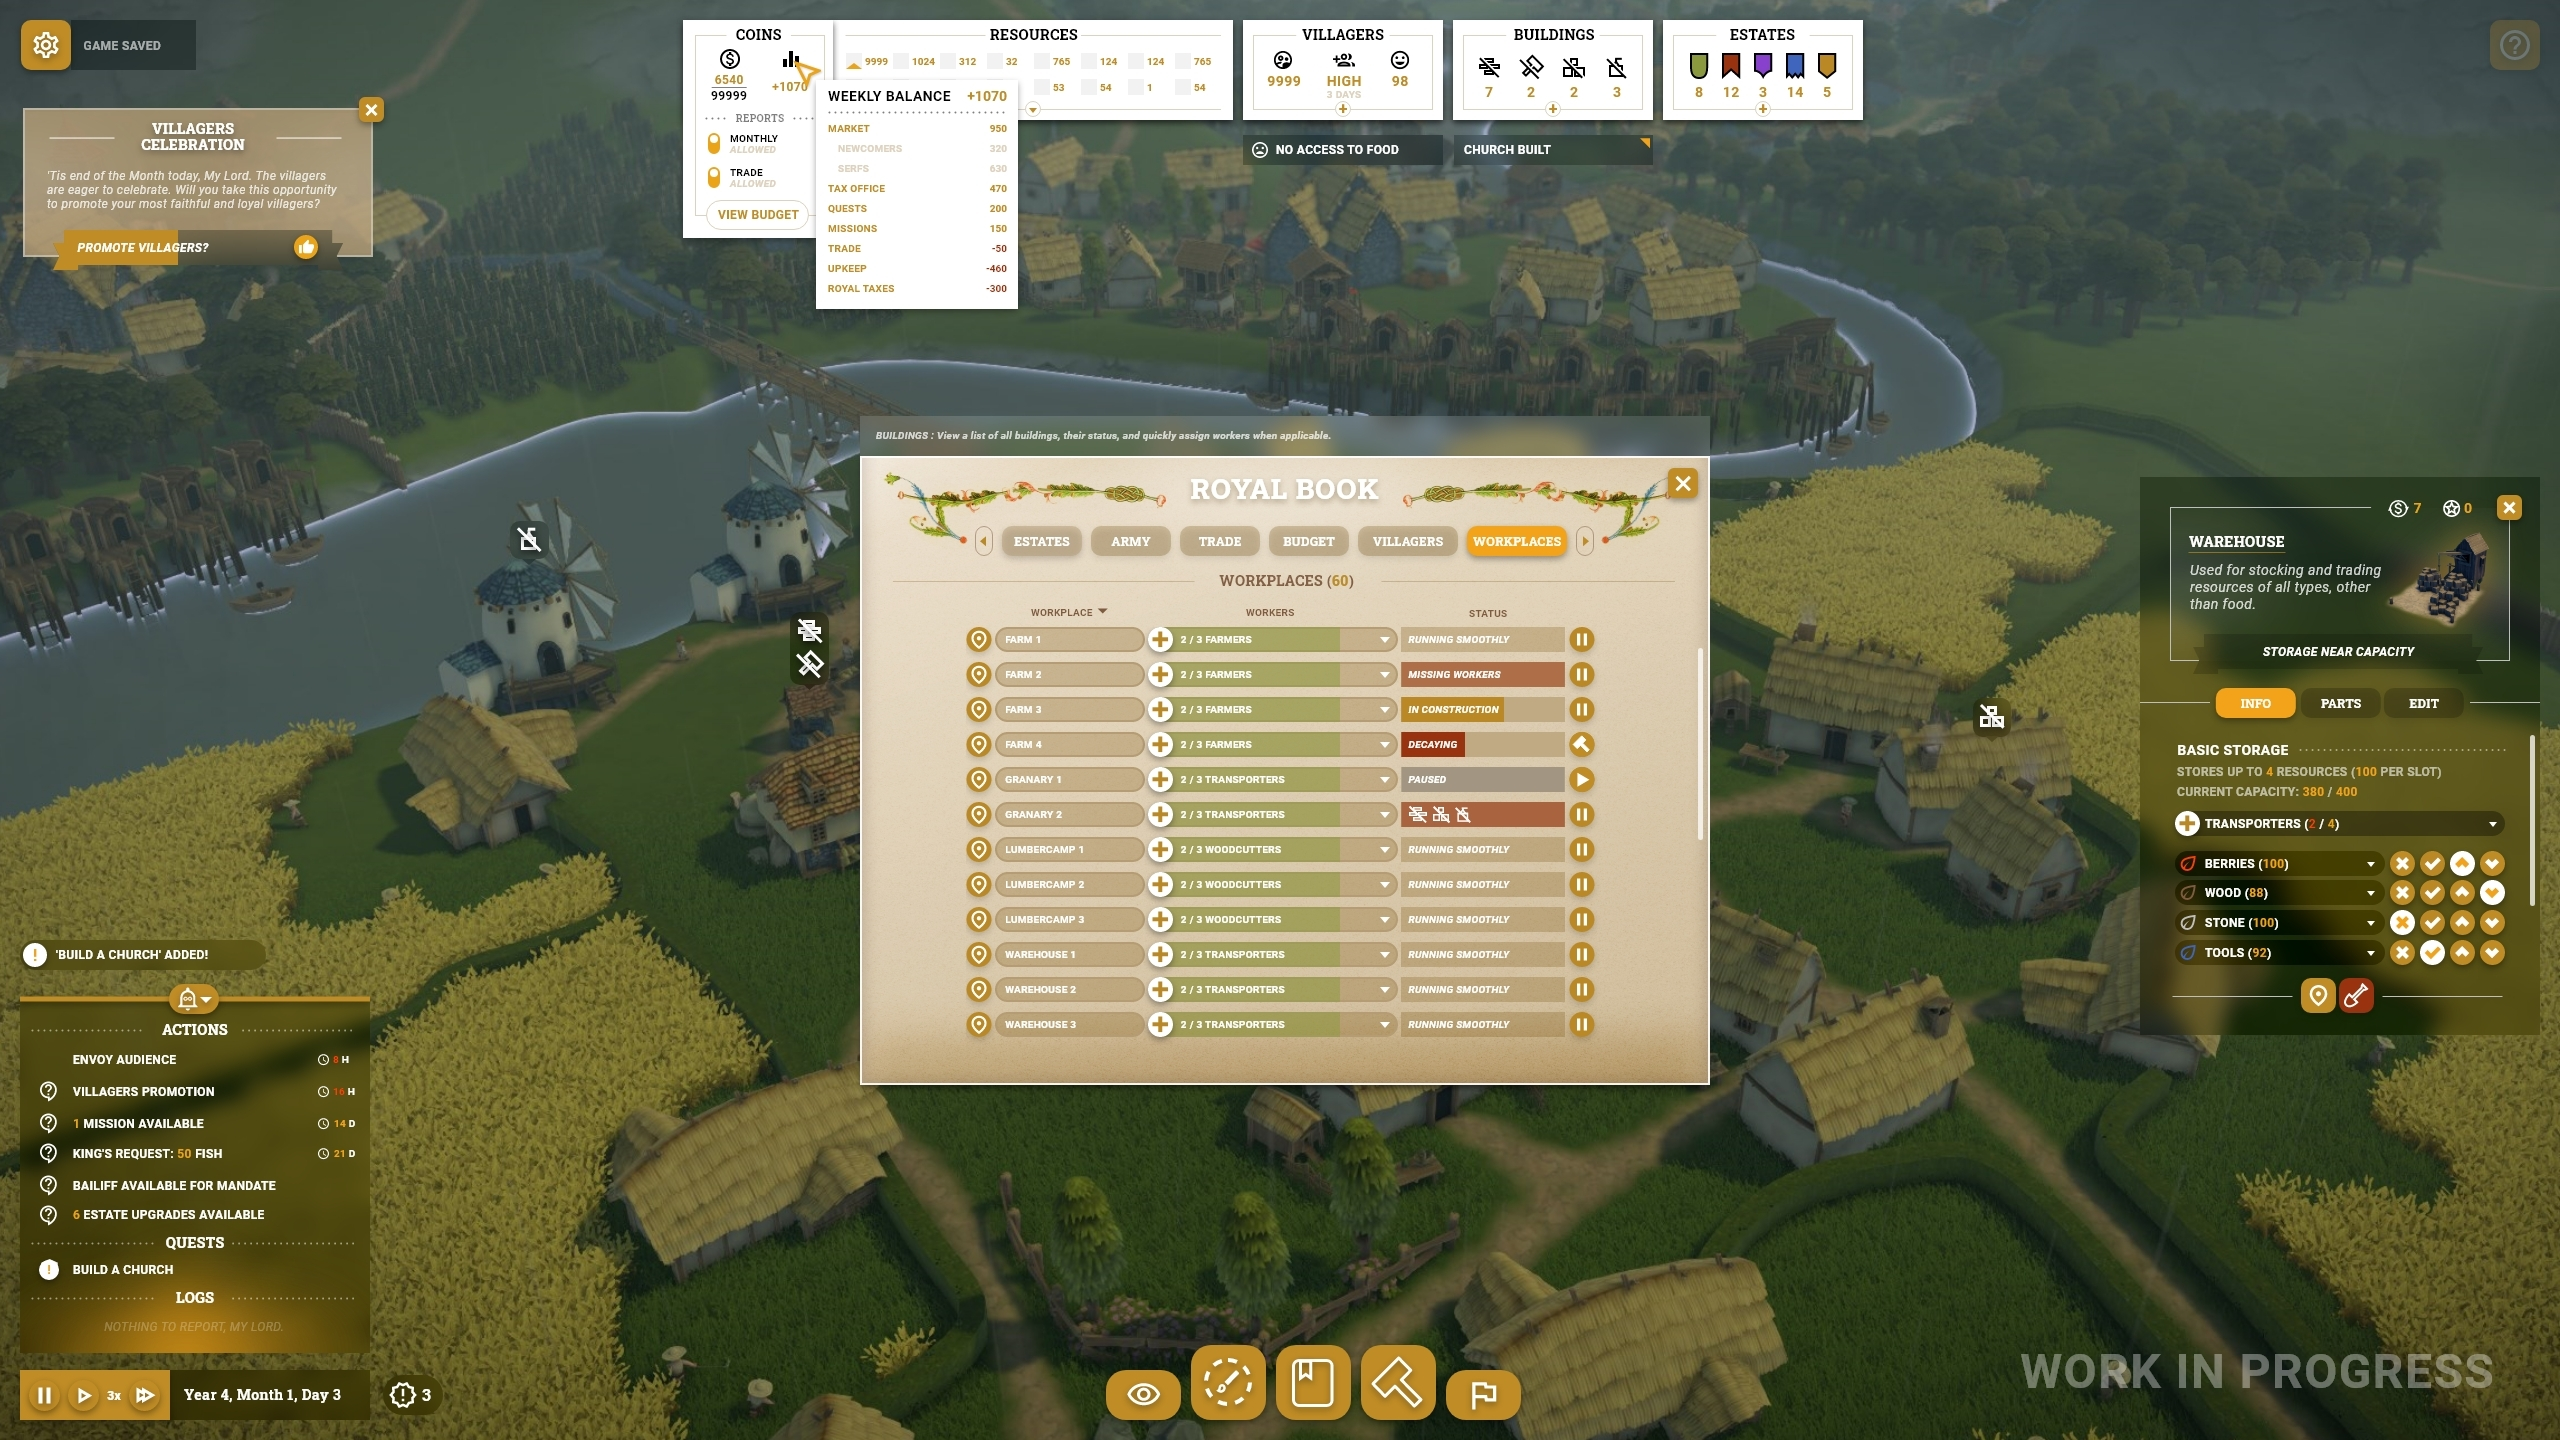 A work in progress screenshot of the new UI for Foundation, this one later on in the game. In the middle of the screen the player has open the Royal Book, showing all the workplaces, their status, and how many workers are employed at each. The book also has tabs for Estates, Army, Trade, Budget and Villagers. In the bottom left corner, a small box shows outstanding actions, such as promoting villagers or upgrading estates, and how many days are left to complete them. At the top of the screen, the player has moused over a menu for Coins, so it has popped up a detailed breakdown of incomings and outgoings.